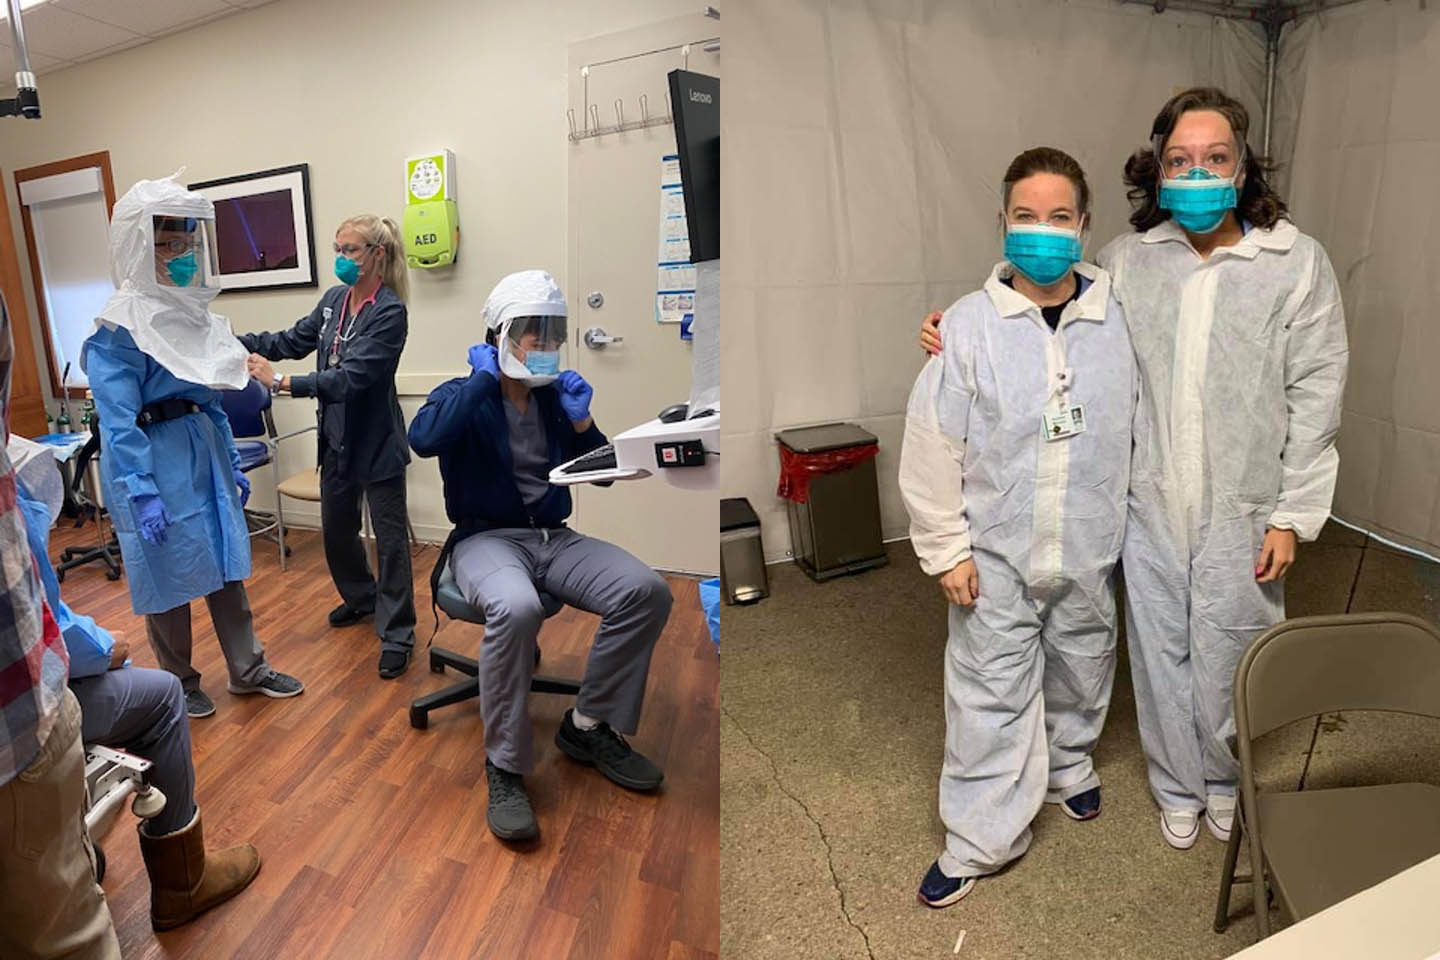 Providers wearing PPE for COVID-19 testing.